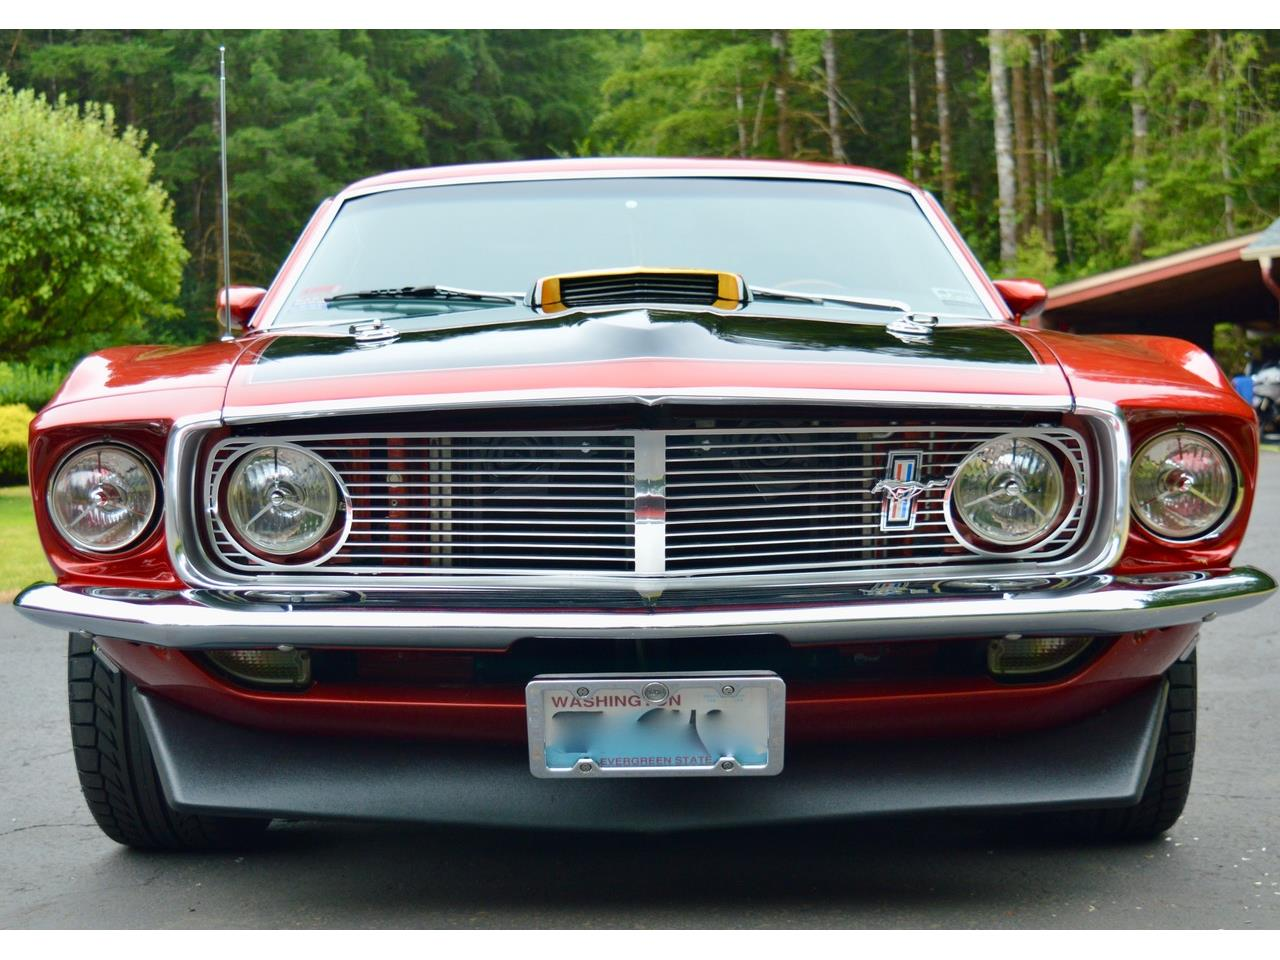 1969 Ford Mustang Mach 1 (CC-1377415) for sale in Battle Ground, Washington